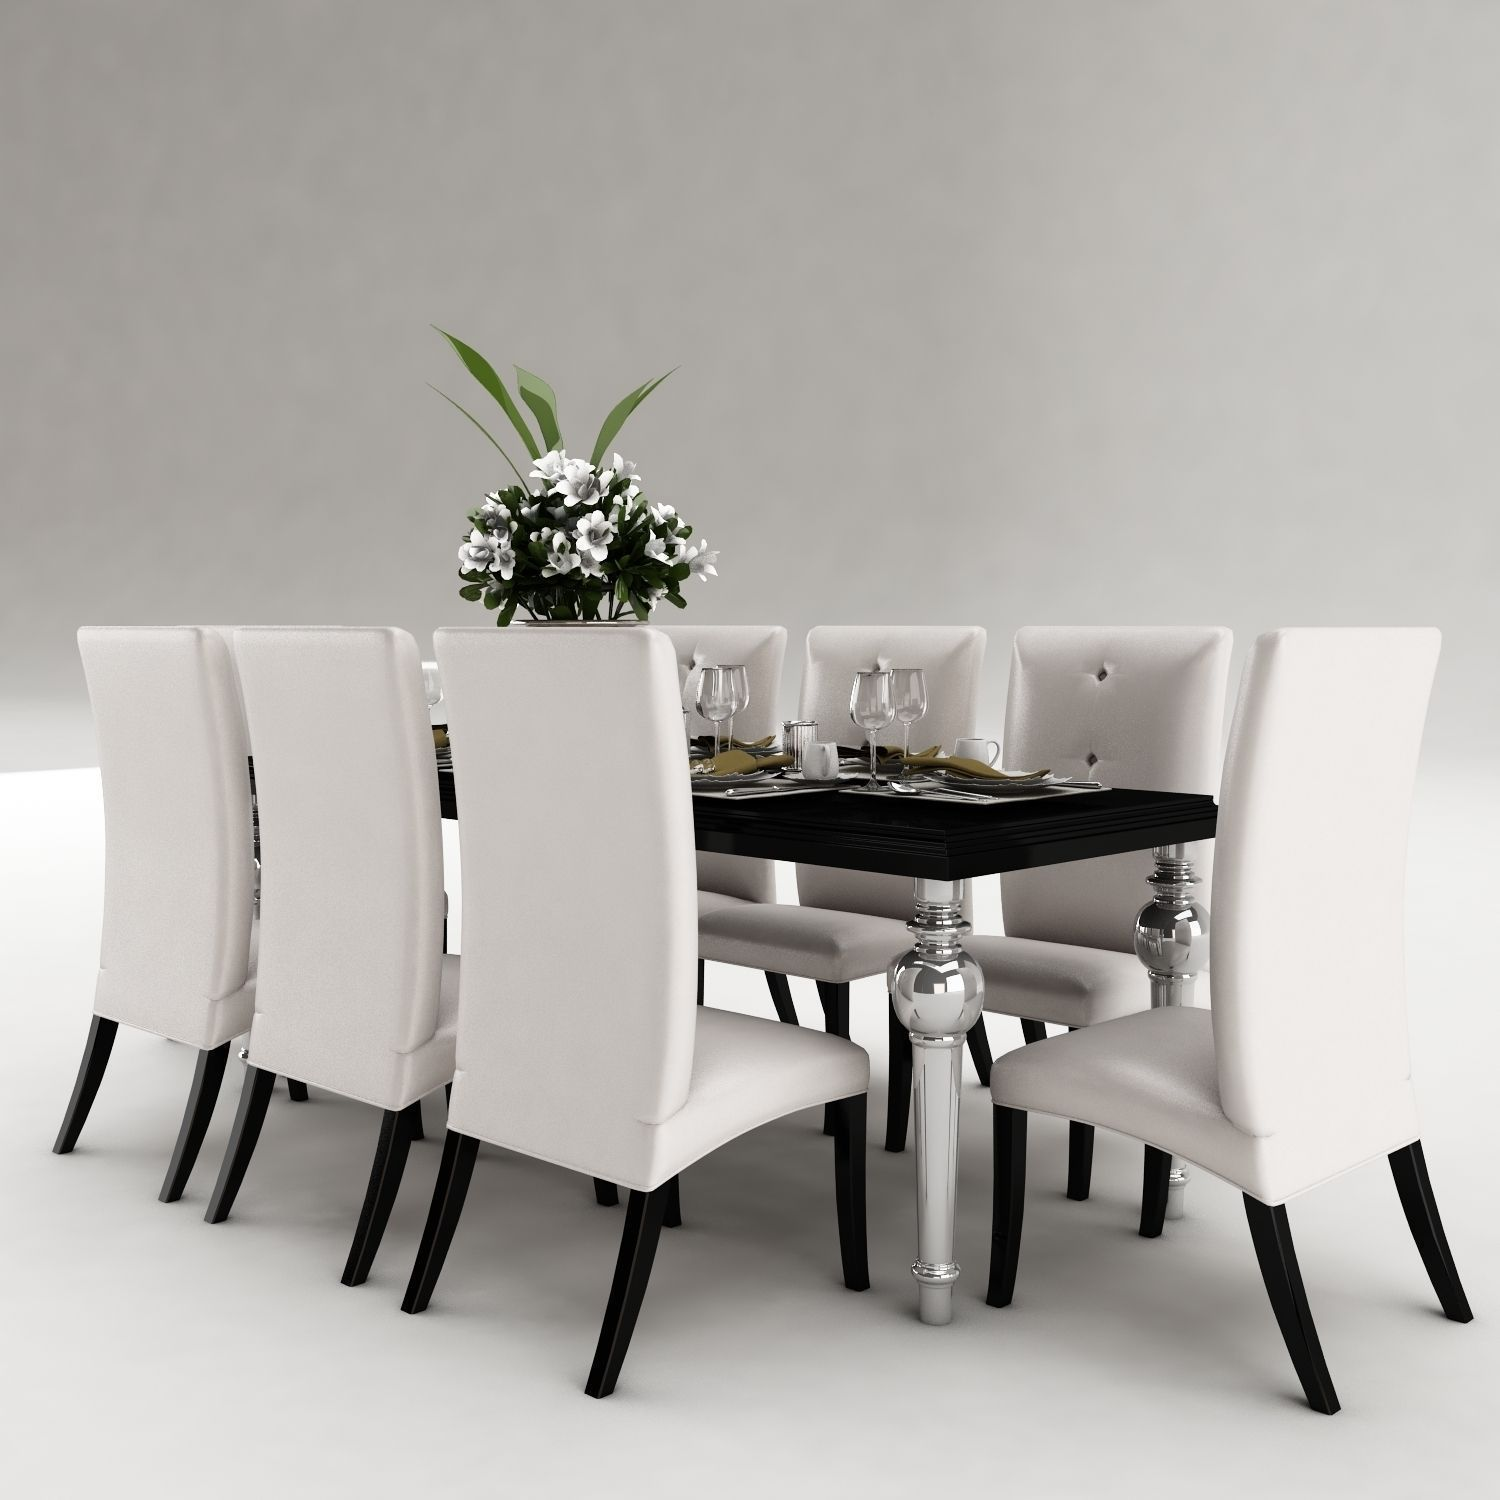 Dining table set 36 3d model max obj 3ds fbx mtl for Dining room table 3ds max